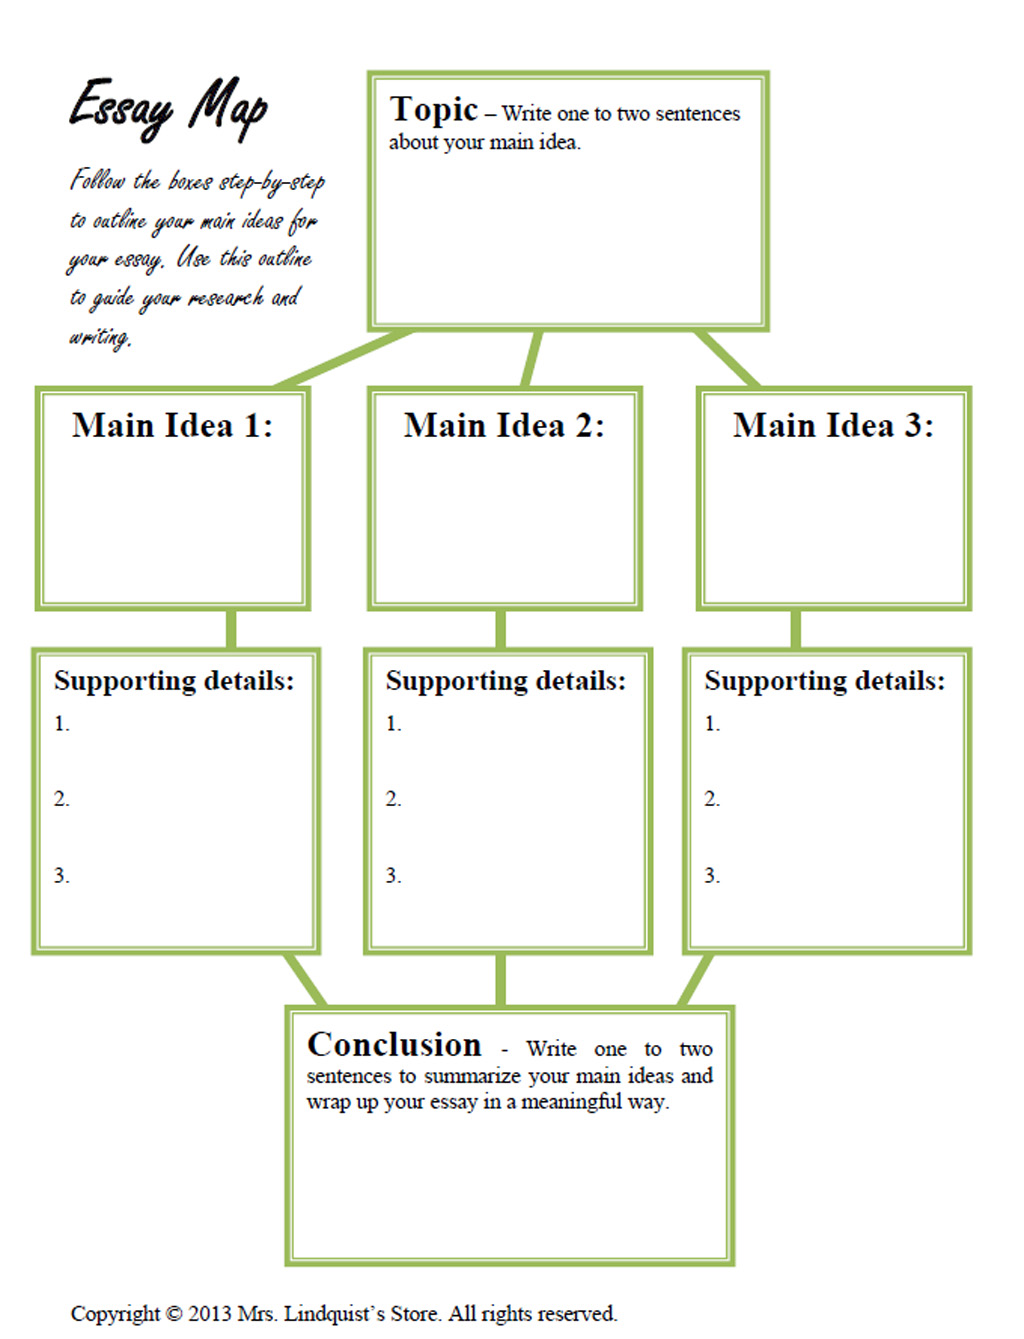 persuasive essay graphic organizer for middle school Consider the reasons one would want school uniforms or not directions for writing: now write a persuasive essay stating whether school uniforms are good or bad idea for ochoa middle school give reasons to support your position arguing in such a convincing manner.